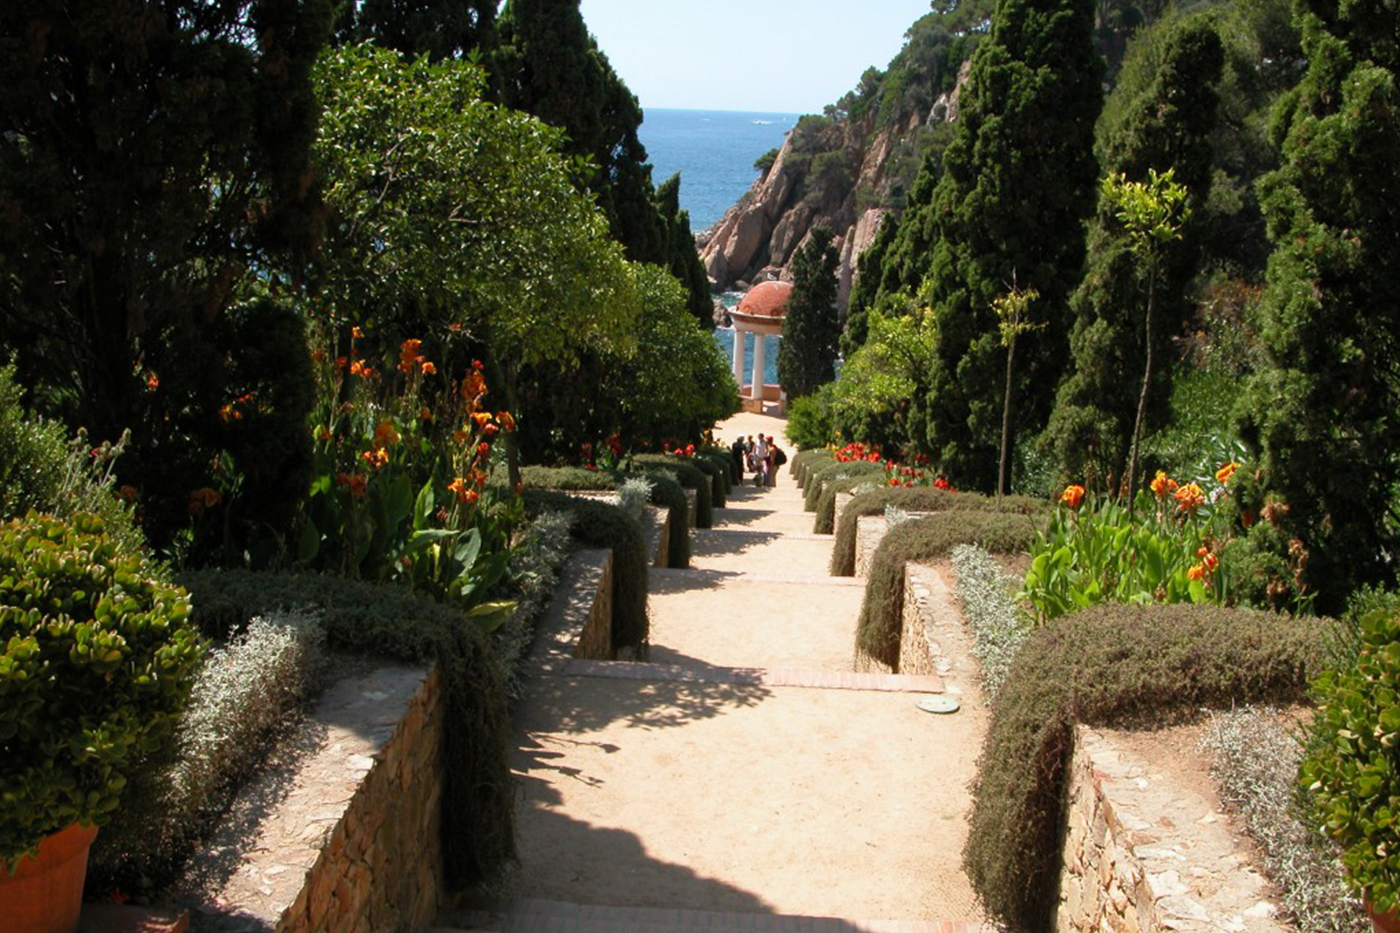 The best places to visit in Blanes. Gardens, terraces and outdoor locations from our campsite